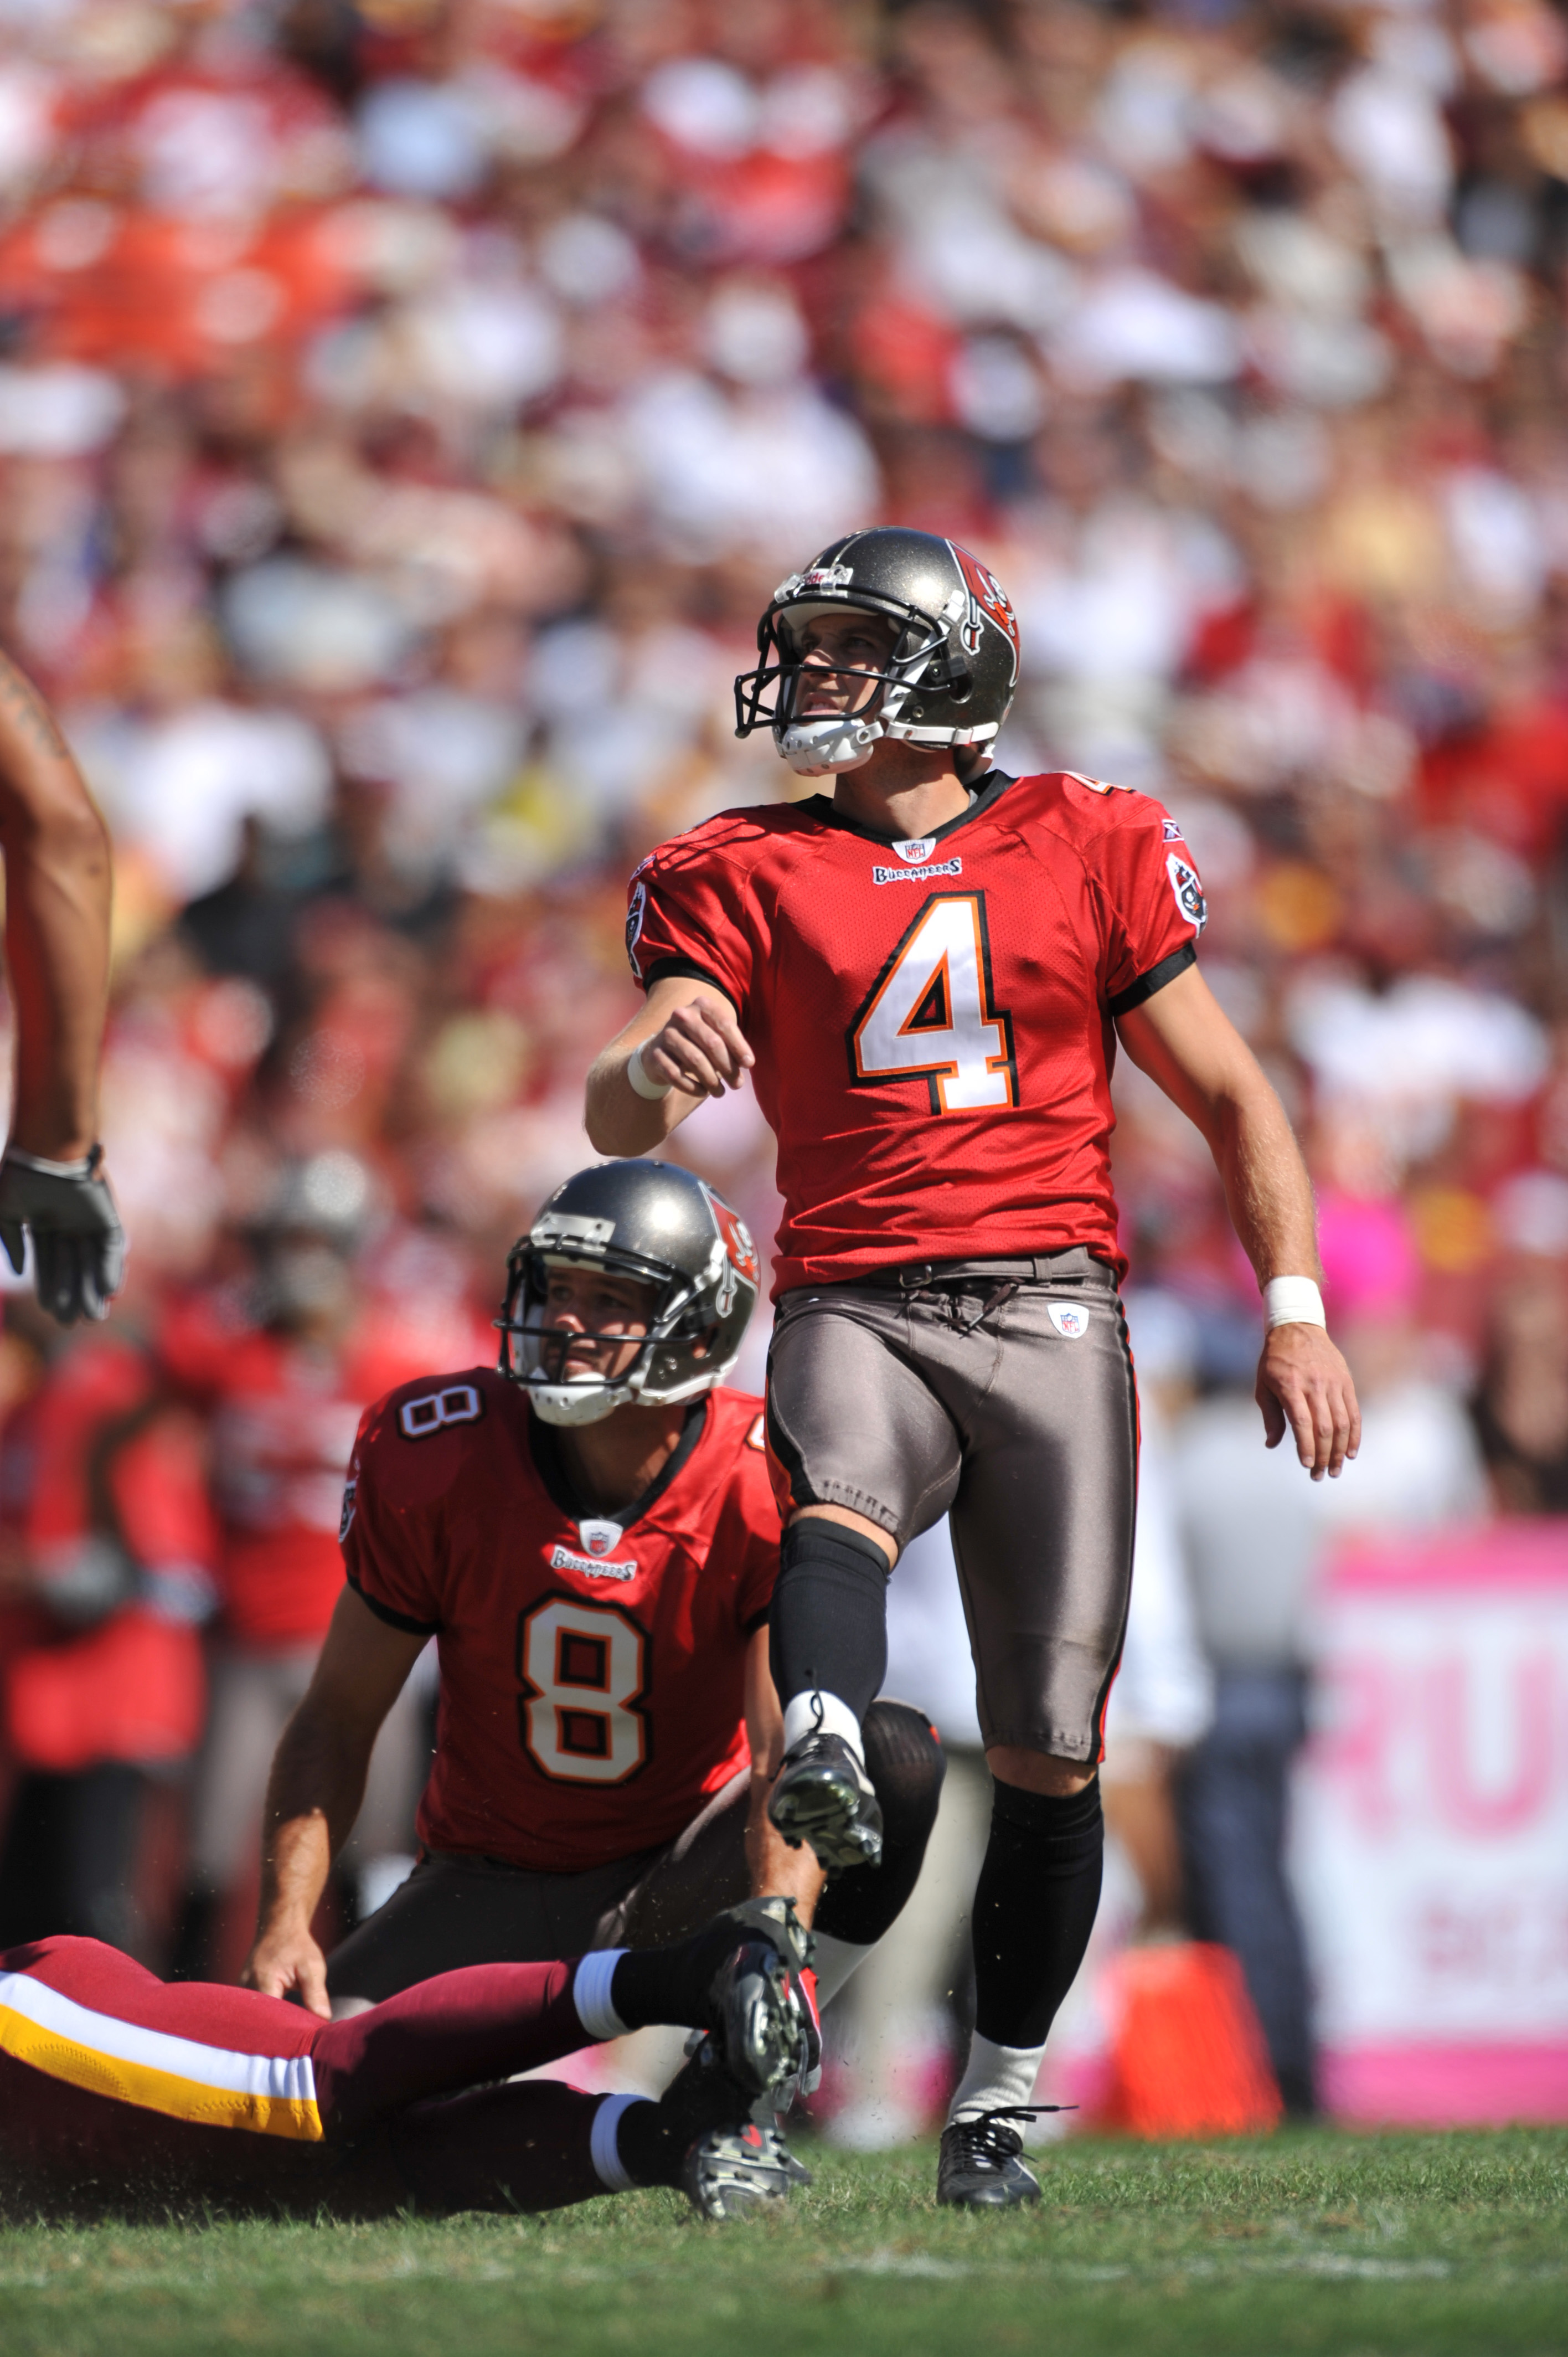 LANDOVER, MD - OCTOBER 4:  Mike Nugent #4 of the Tampa Bay Buccaneers watches his missed field goal against the Washington Redskins at FedExField on October 4, 2009 in Landover, Maryland. The Redskins defeated the Buccaneers 16-13. (Photo by Larry French/